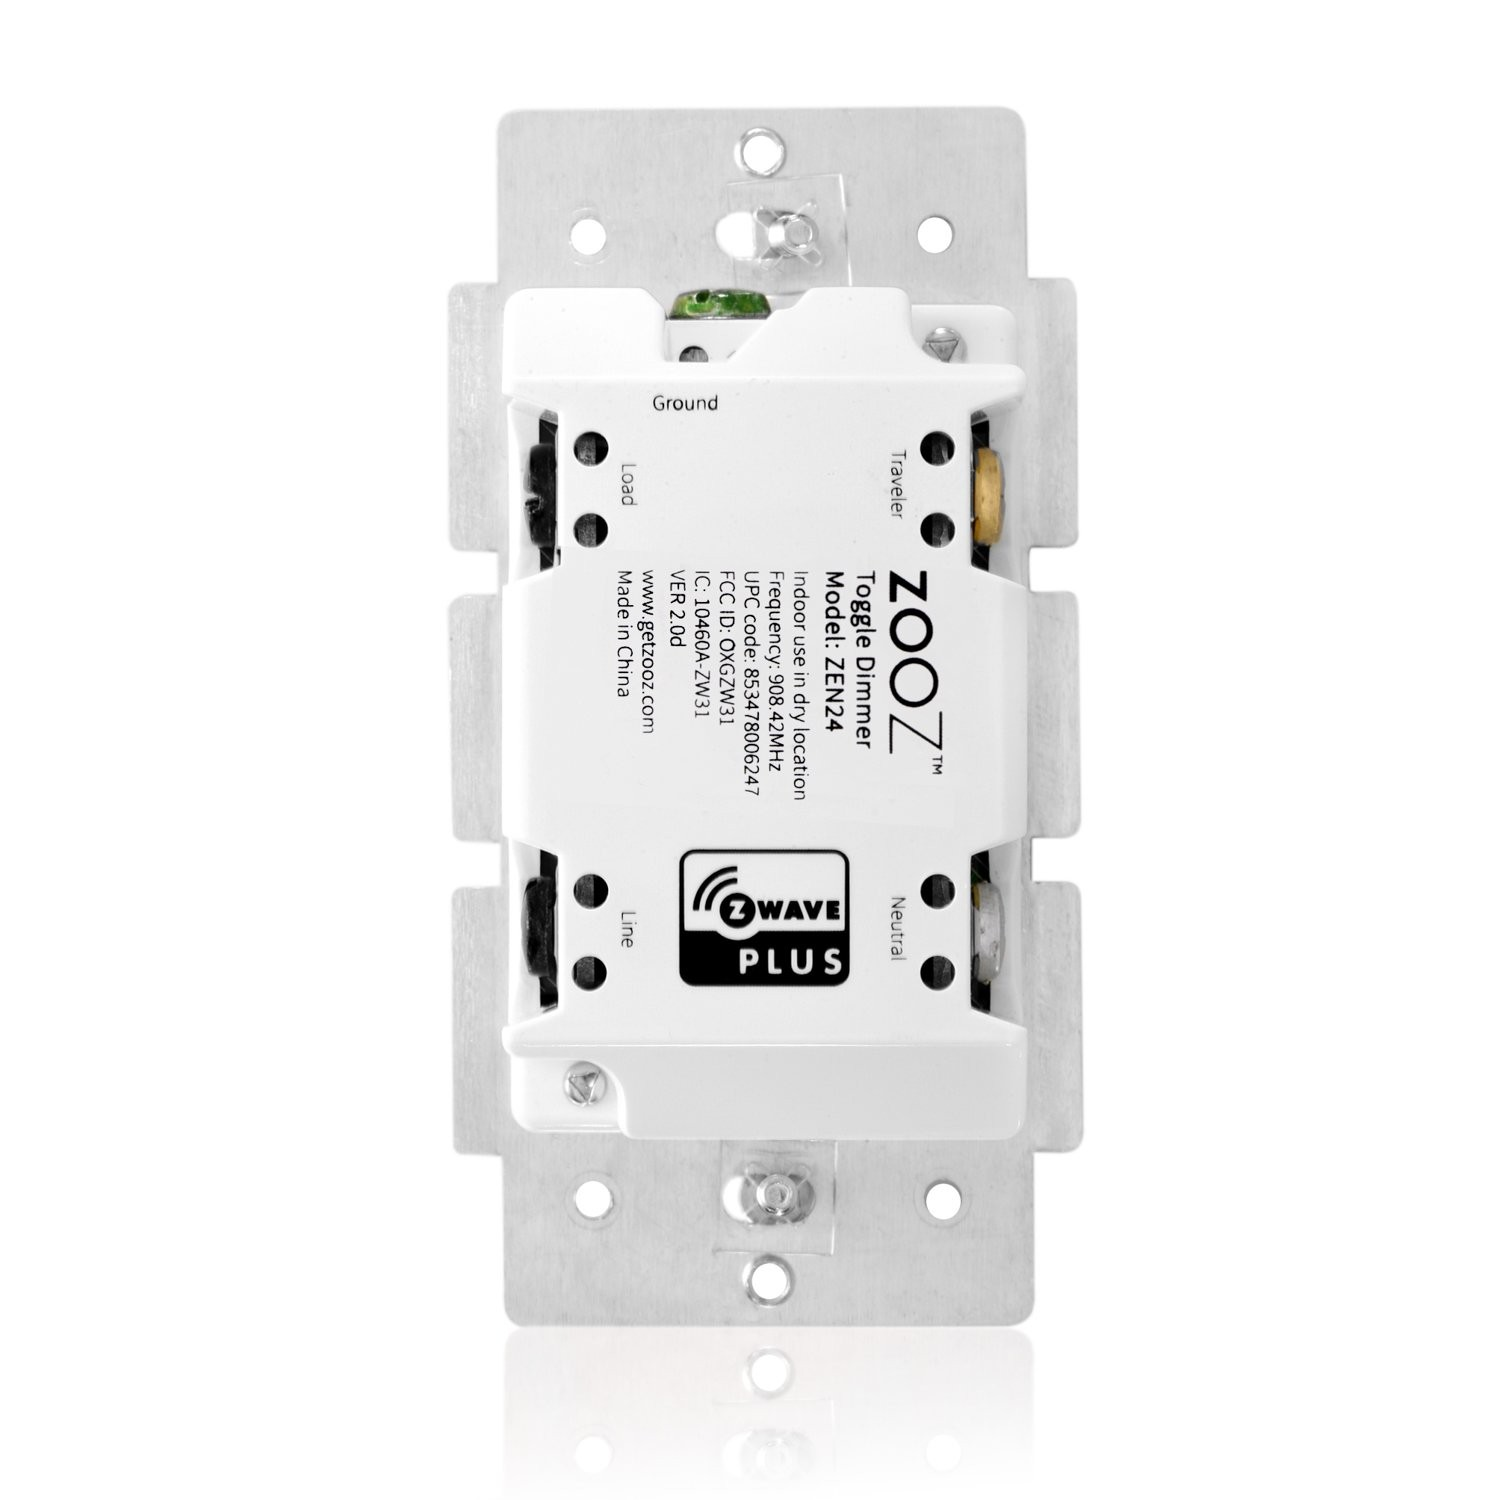 4 Way Dimmer Switch Wiring Diagram Zooz Z Wave Plus Dimmer toggle Switch Zen24 Ver 3 0 the Smartest Of 4 Way Dimmer Switch Wiring Diagram